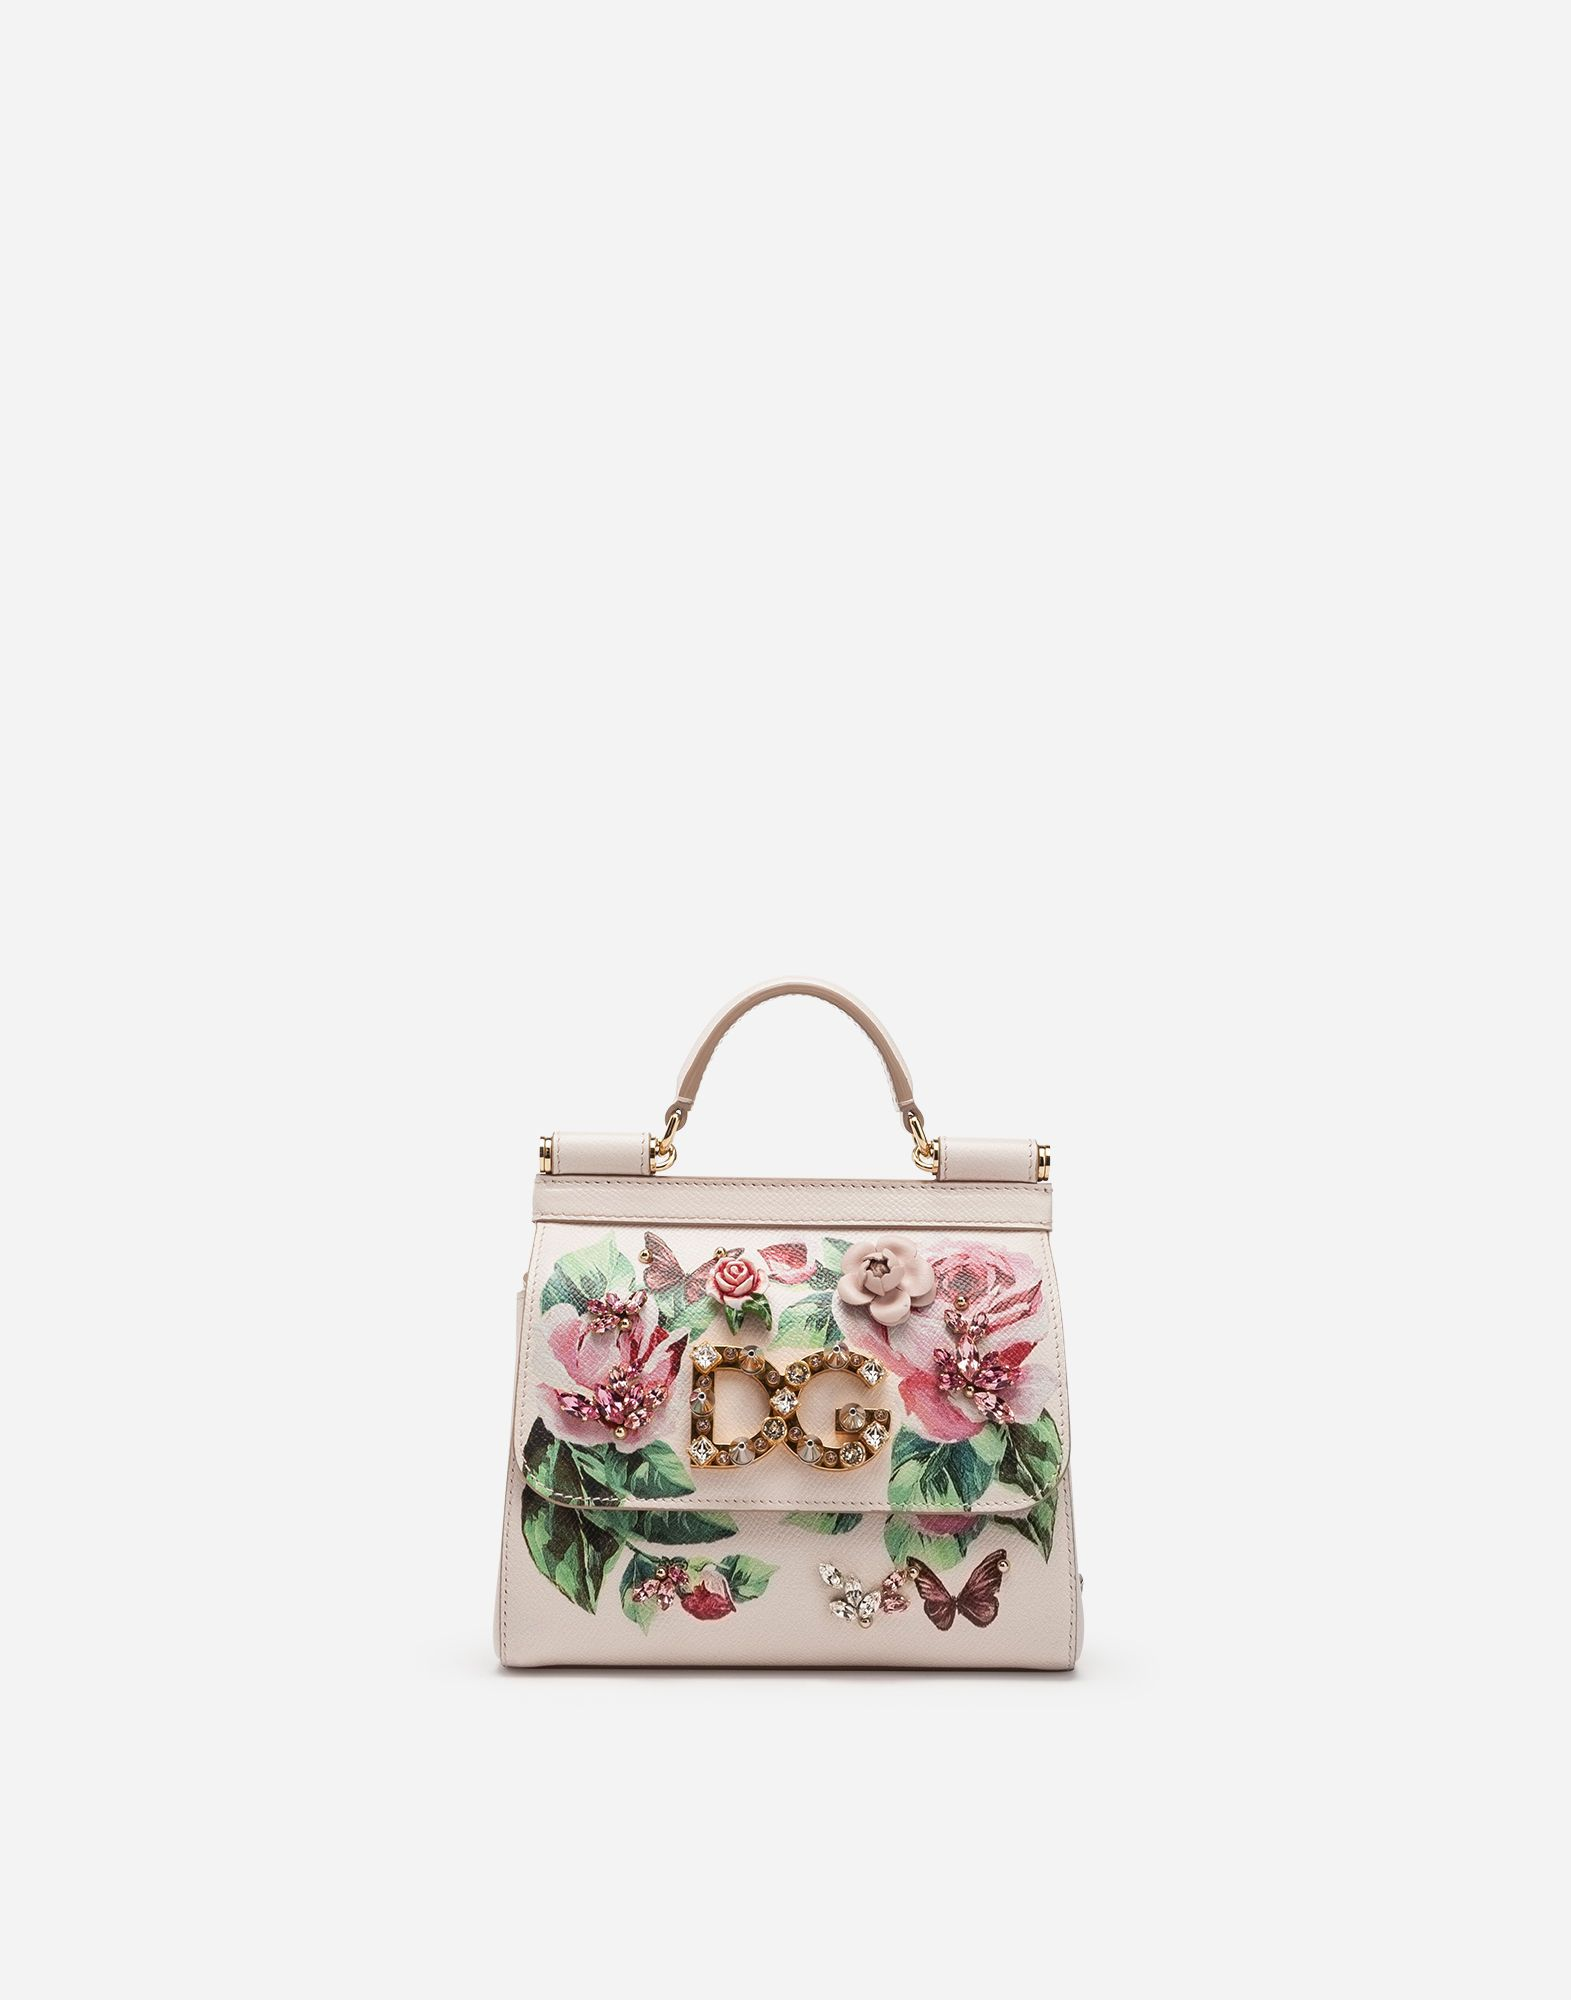 MINI SICILY BAG IN PRINTED DAUPHINE CALFSKIN   My... Gift List ... 7d099d8864